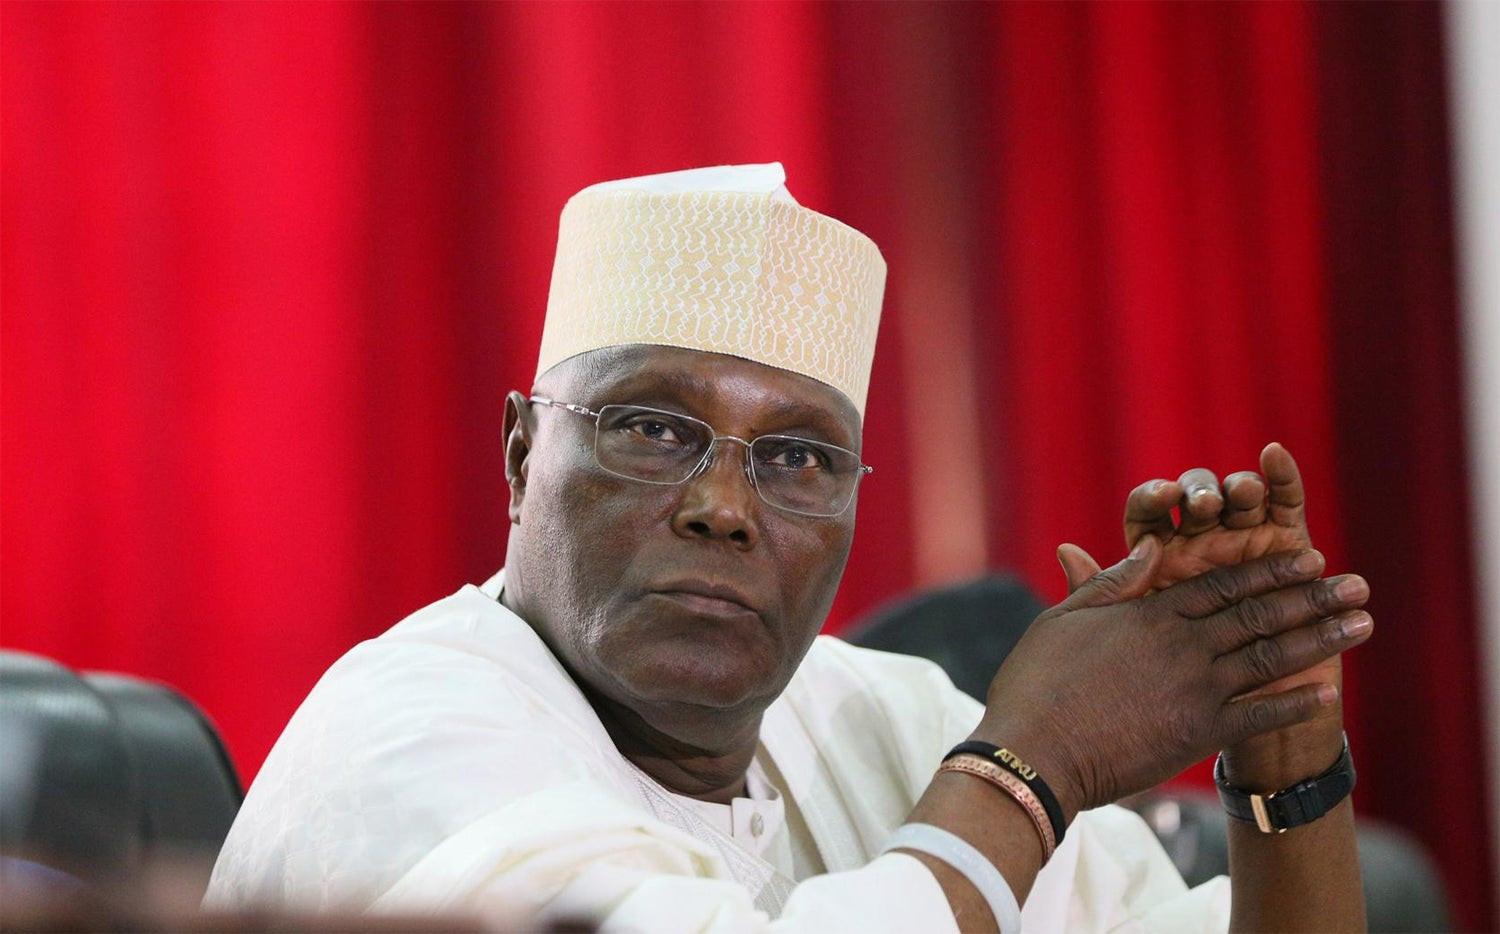 Nigeria is not a dictatorship- Atiku Abubakar condemns rearrest of Omoyele Sowore inside Abuja court